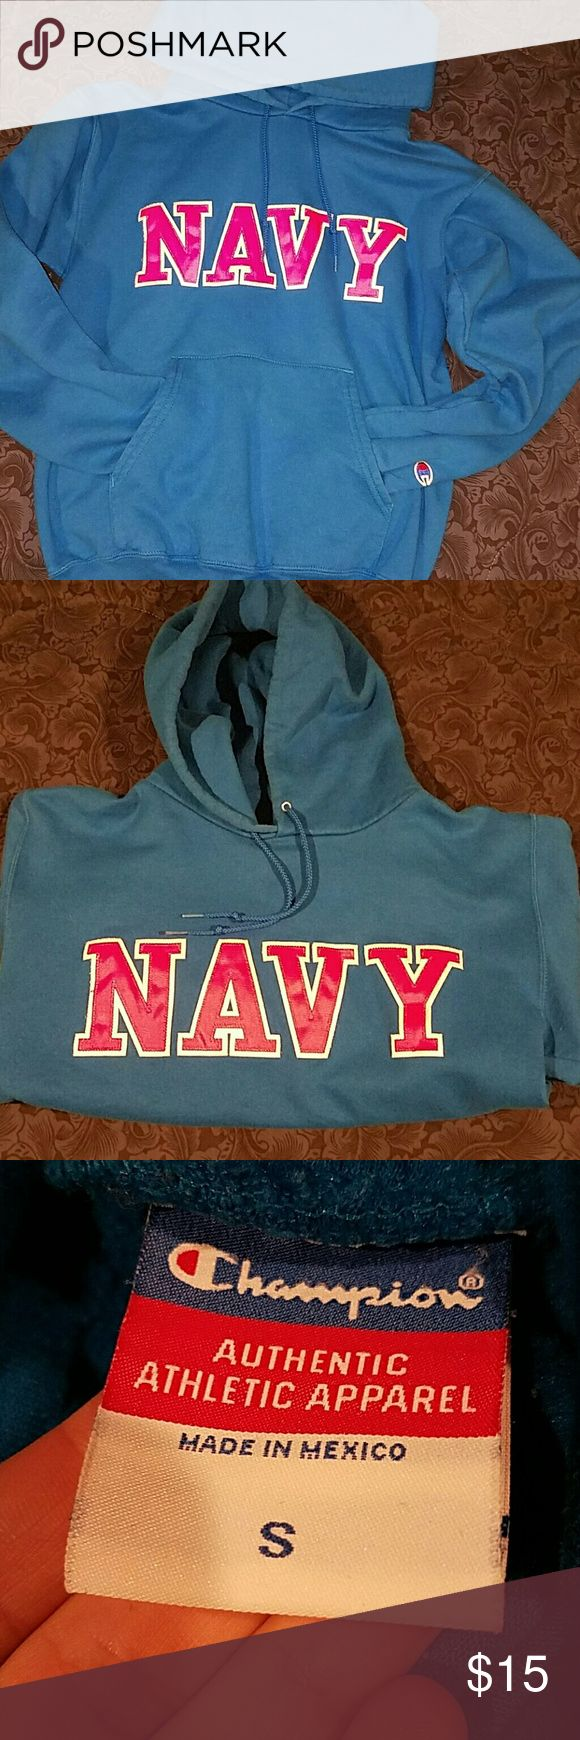 Navy Hoodie Hot pink lettering on turquoise background. Champion Tops Sweatshirts & Hoodies